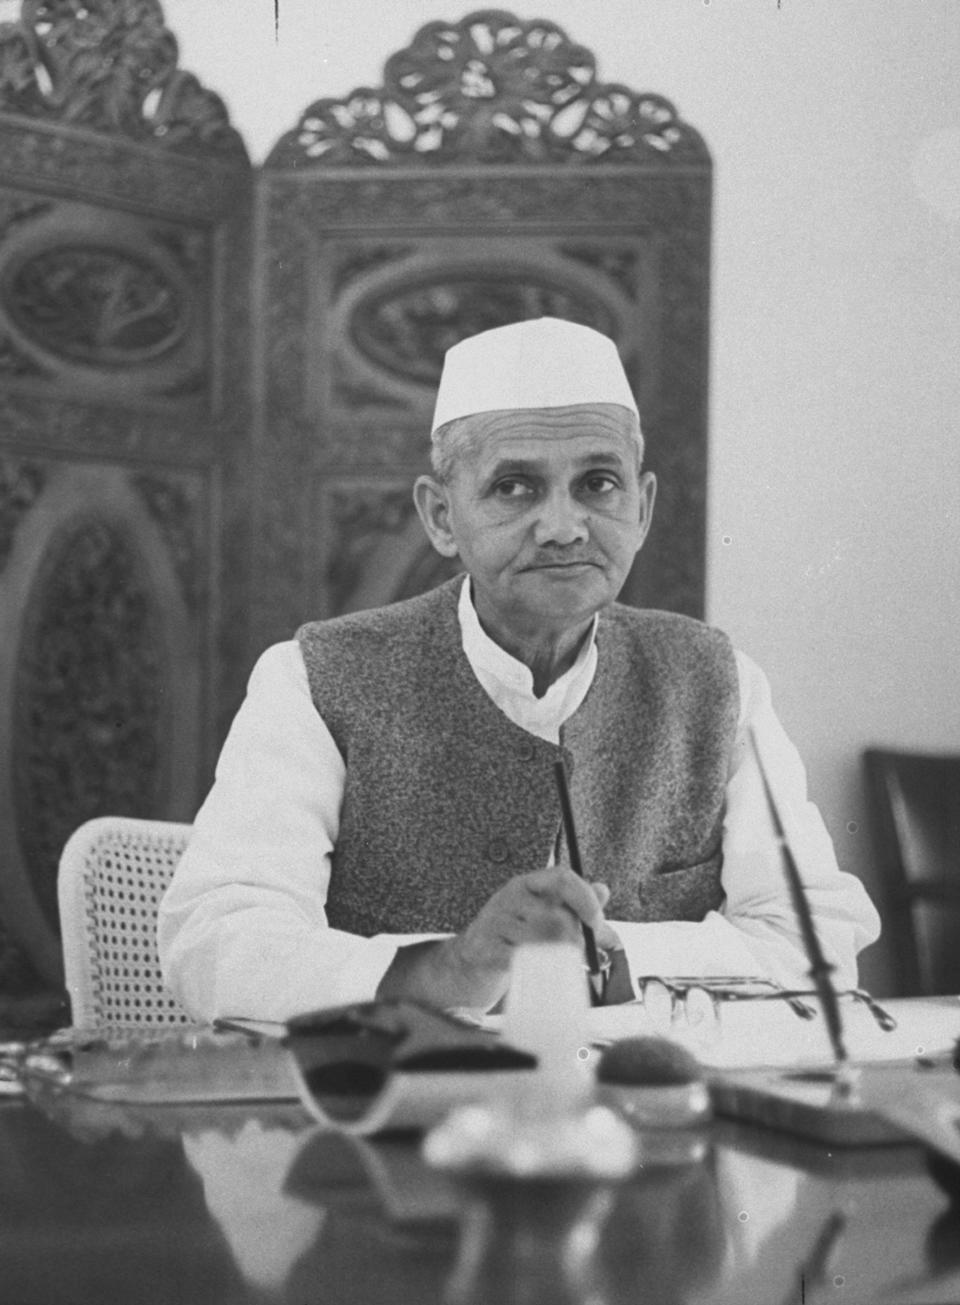 Prime Minister Lal Bahadur Shastri of India in his office in Parliament. (Photo by Stan Wayman/The LIFE Picture Collection via Getty Images)